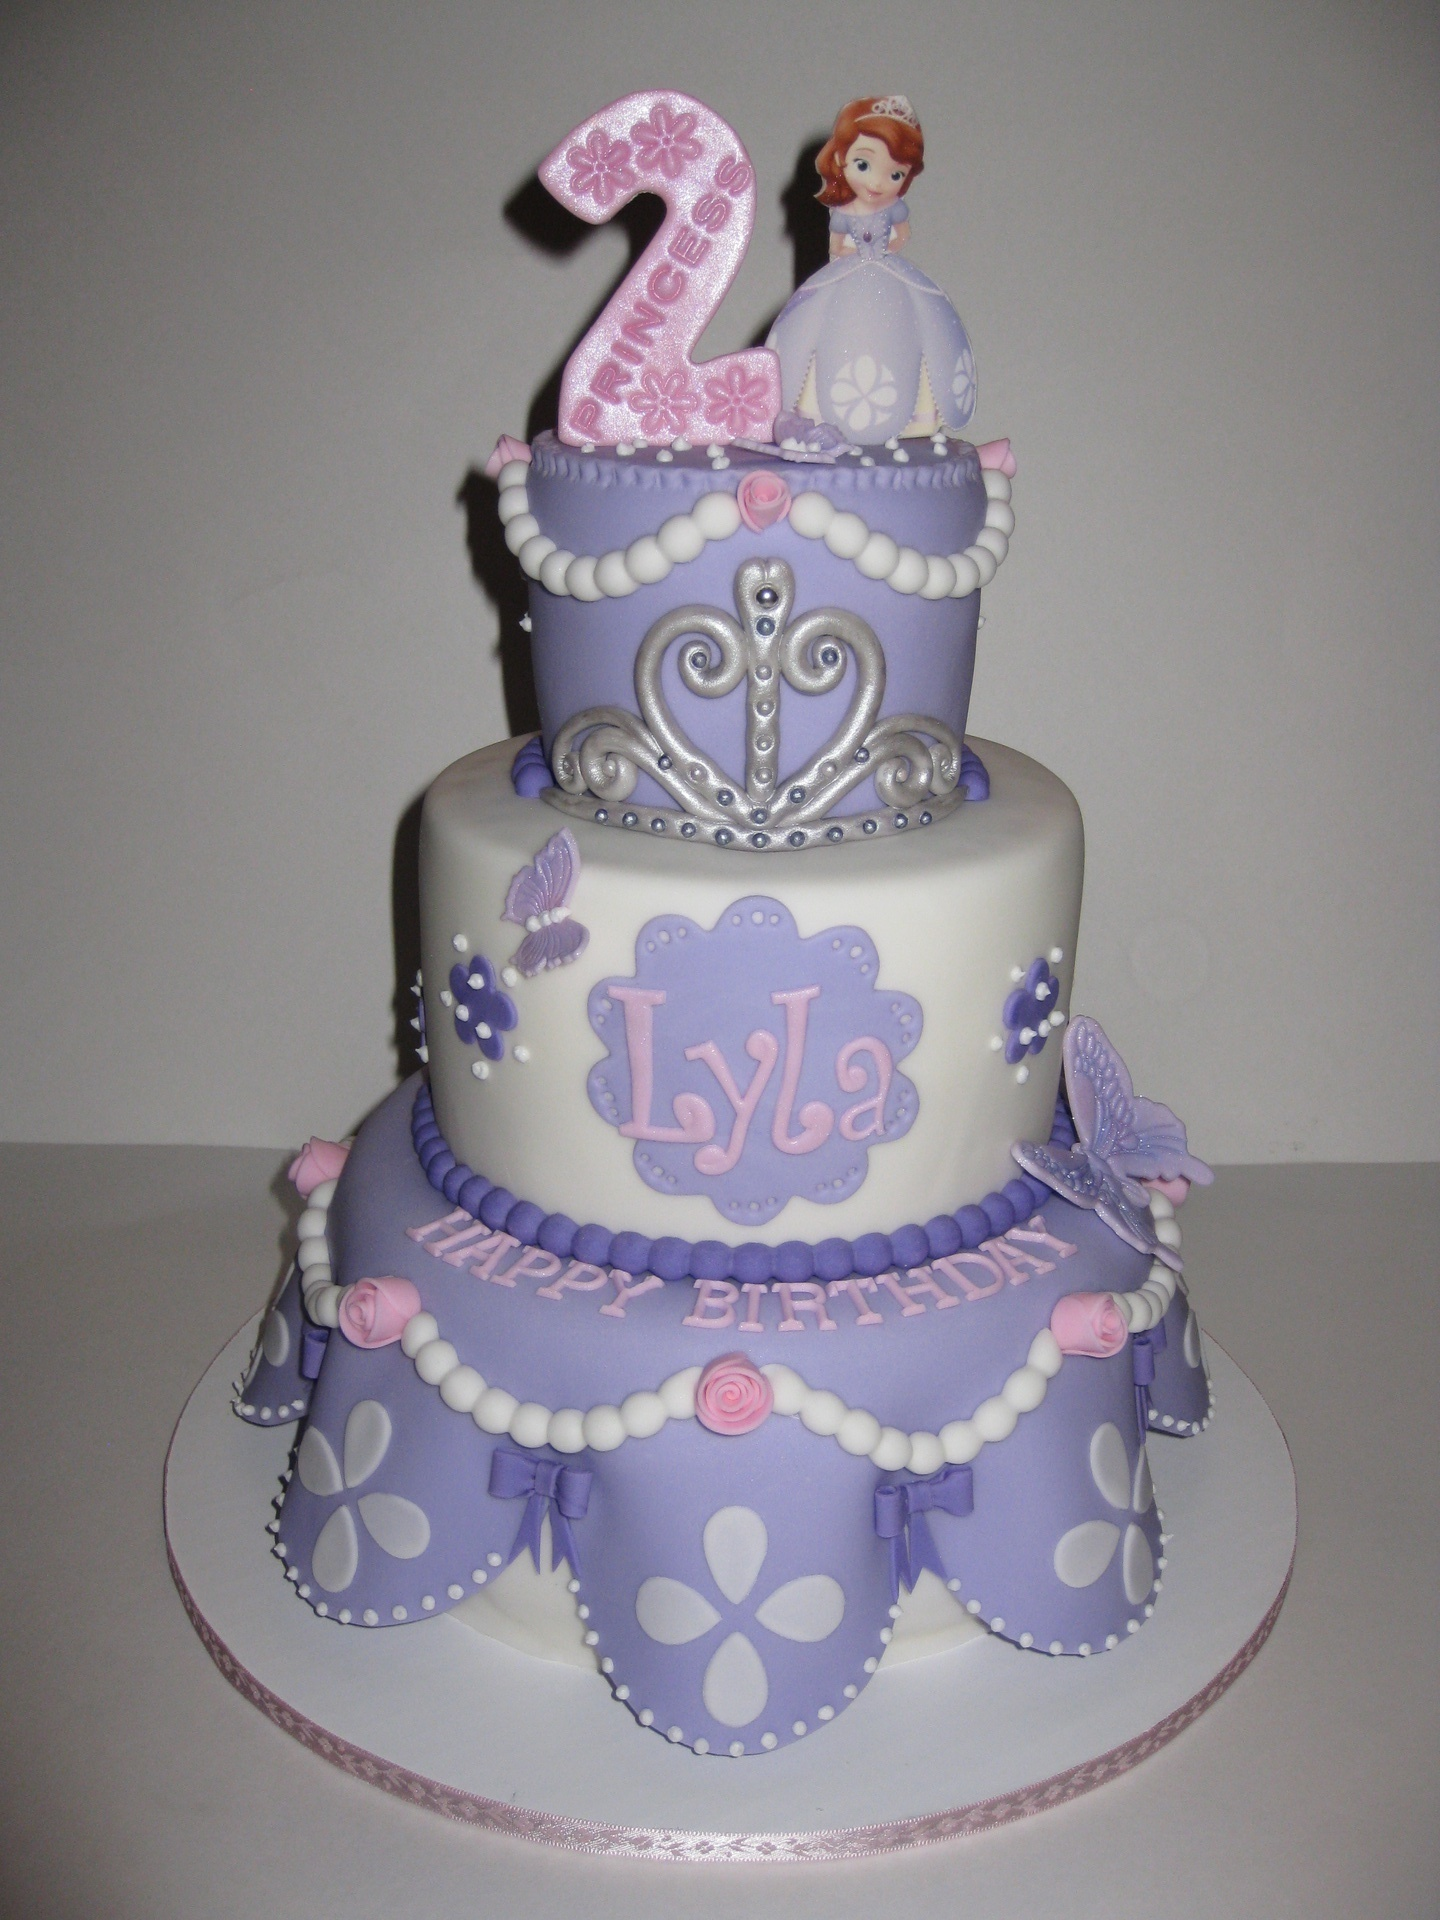 Lyla's Sofia the First Birthday